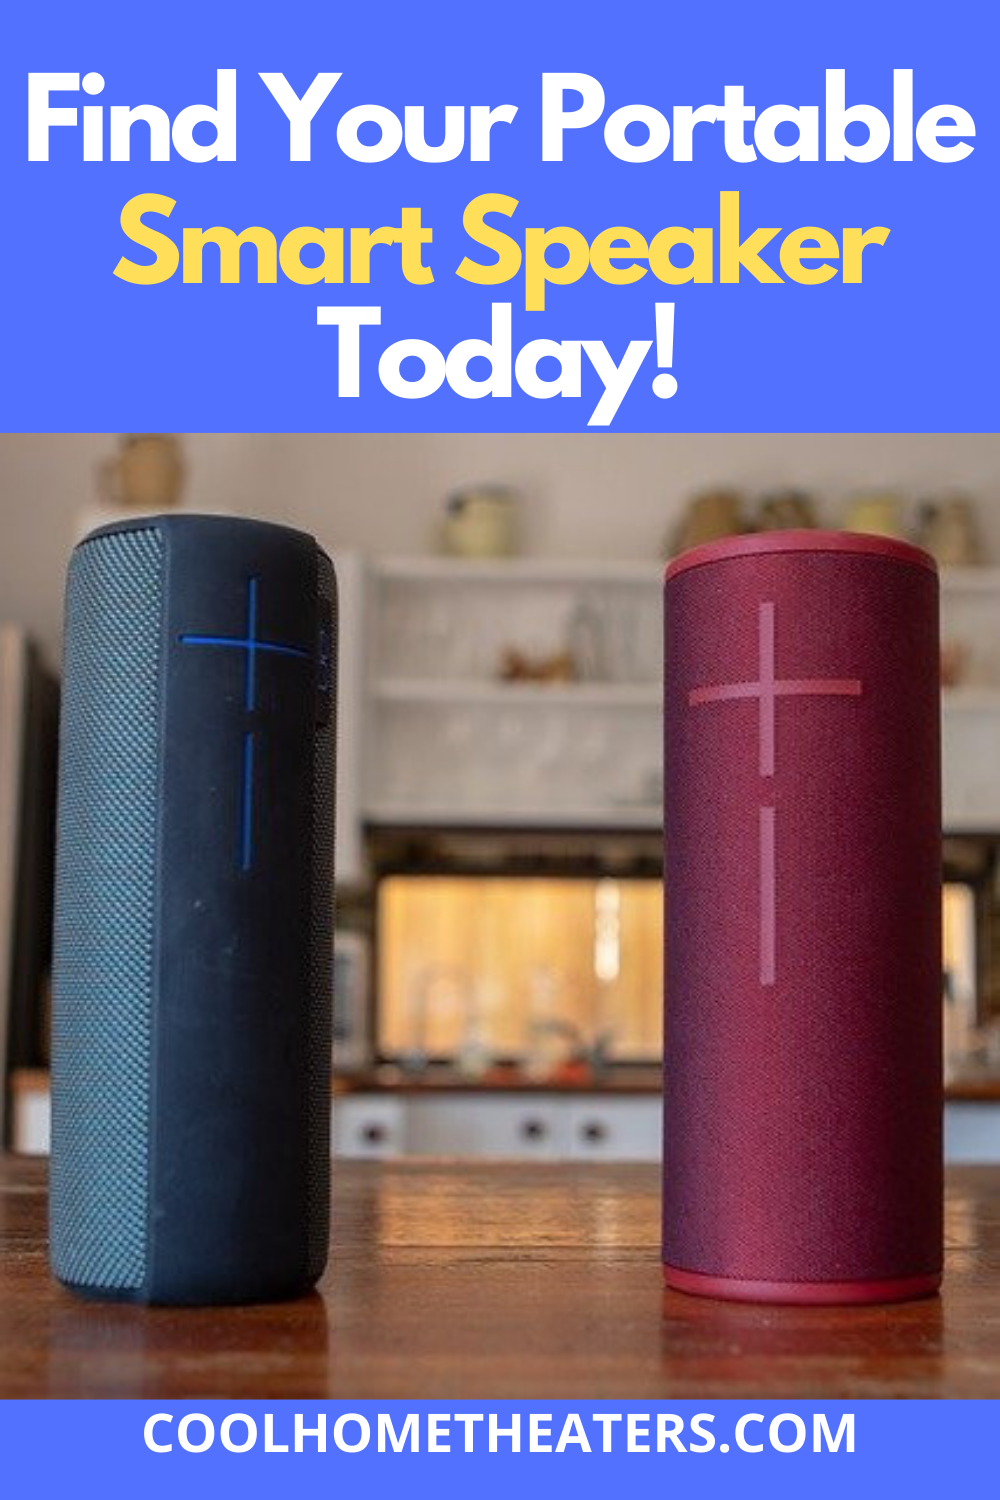 What Is The Best Smart Speaker For Home Entertainment?